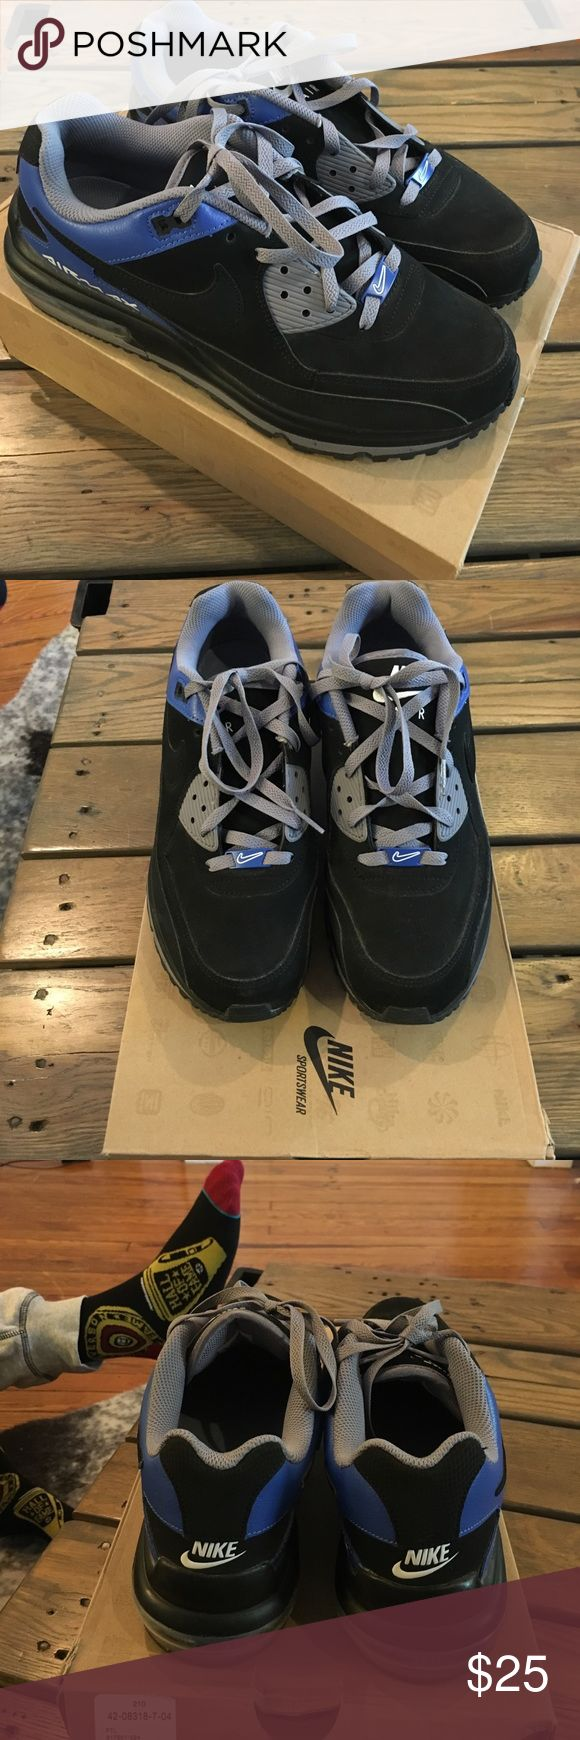 Nike Air Max Wright Excellent condition Air Max Wright sneakers Nike Shoes Sneakers